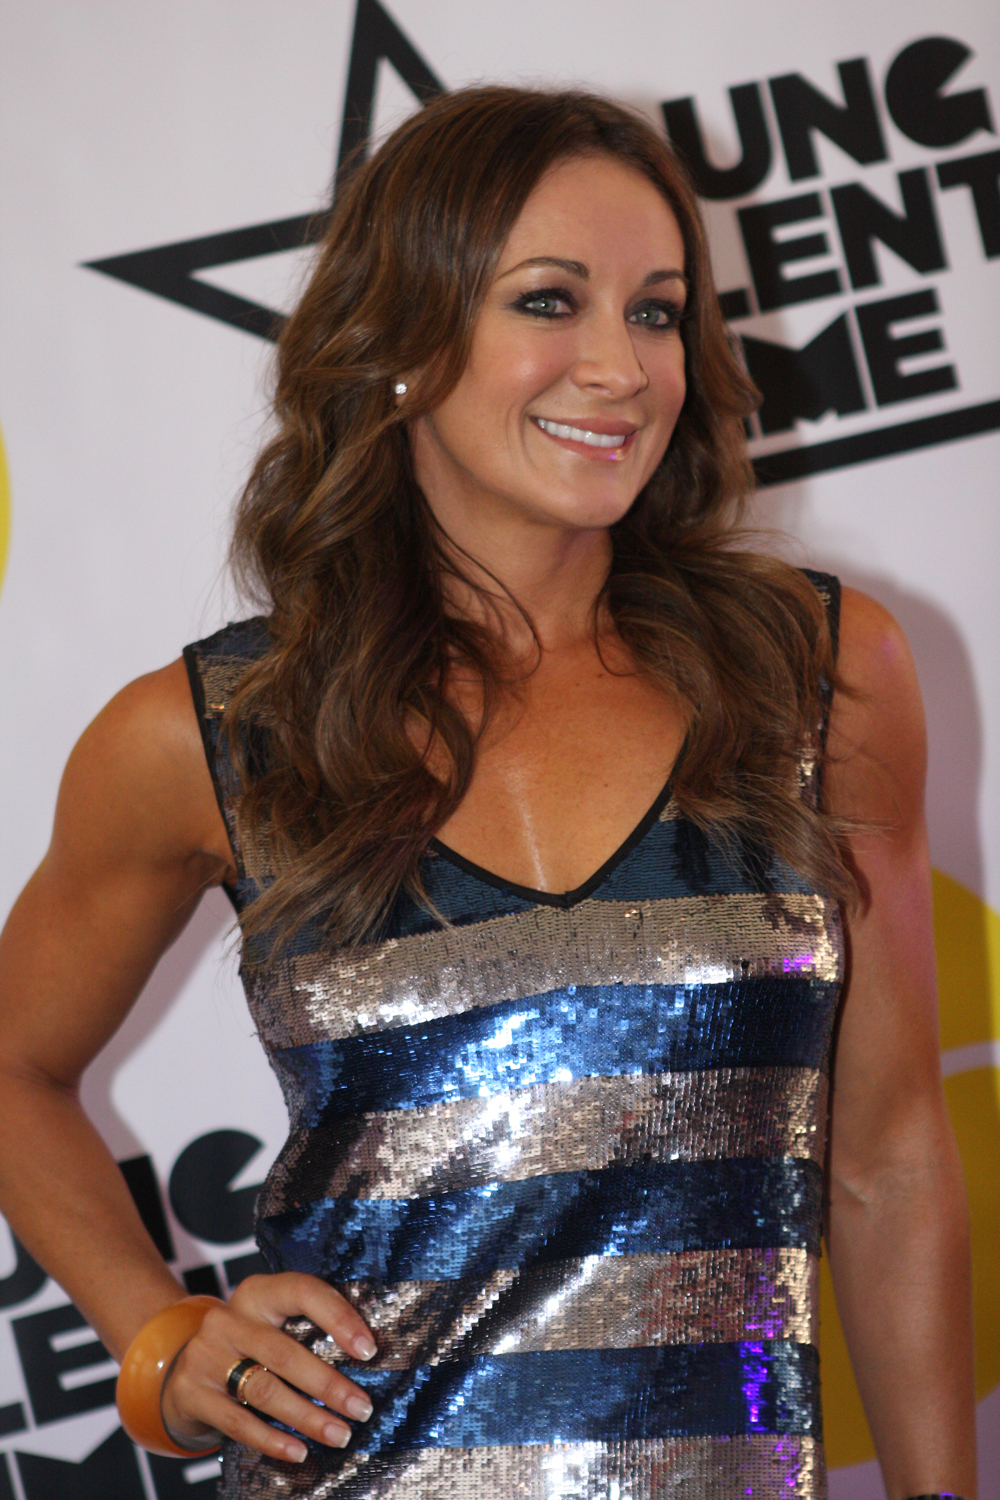 Michelle bogowith gary pinkel girlfriend click for details michelle